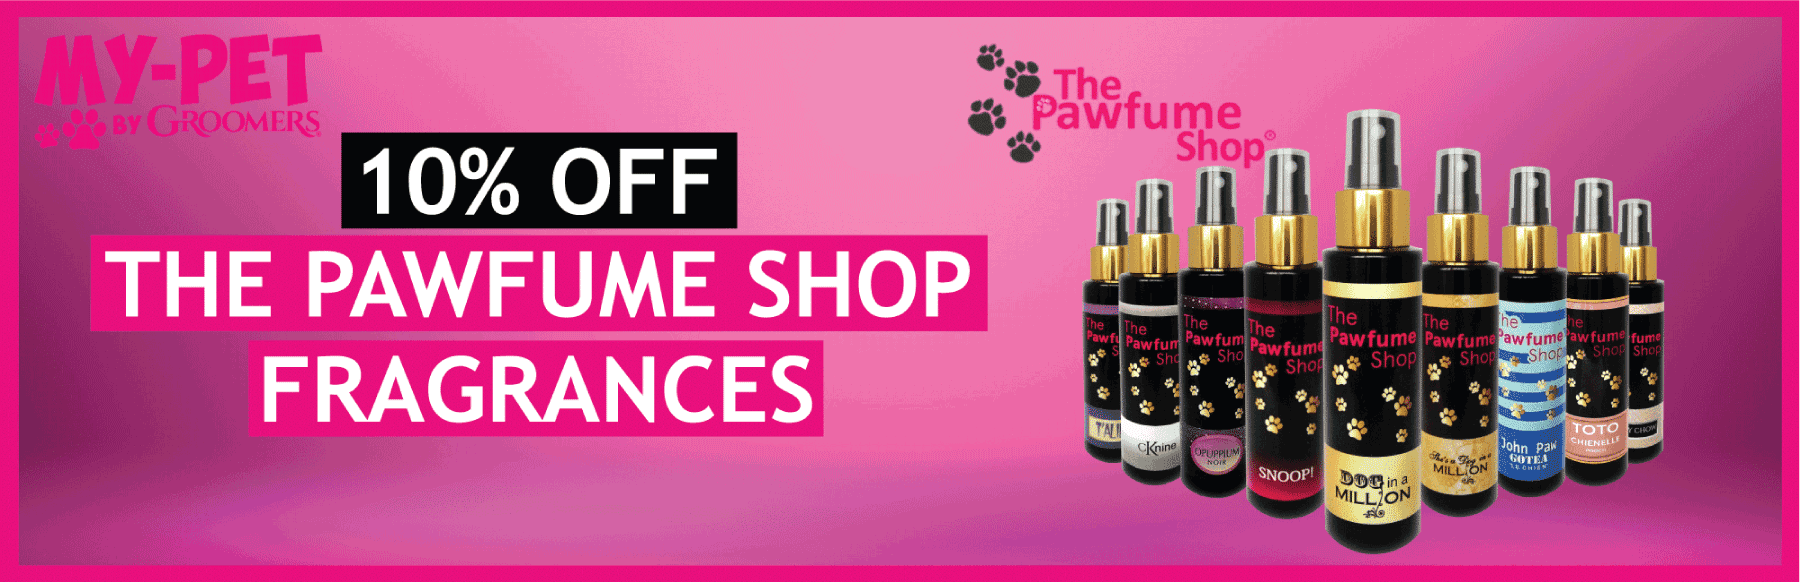 10% OFF The Pawfume Shop Fragrance